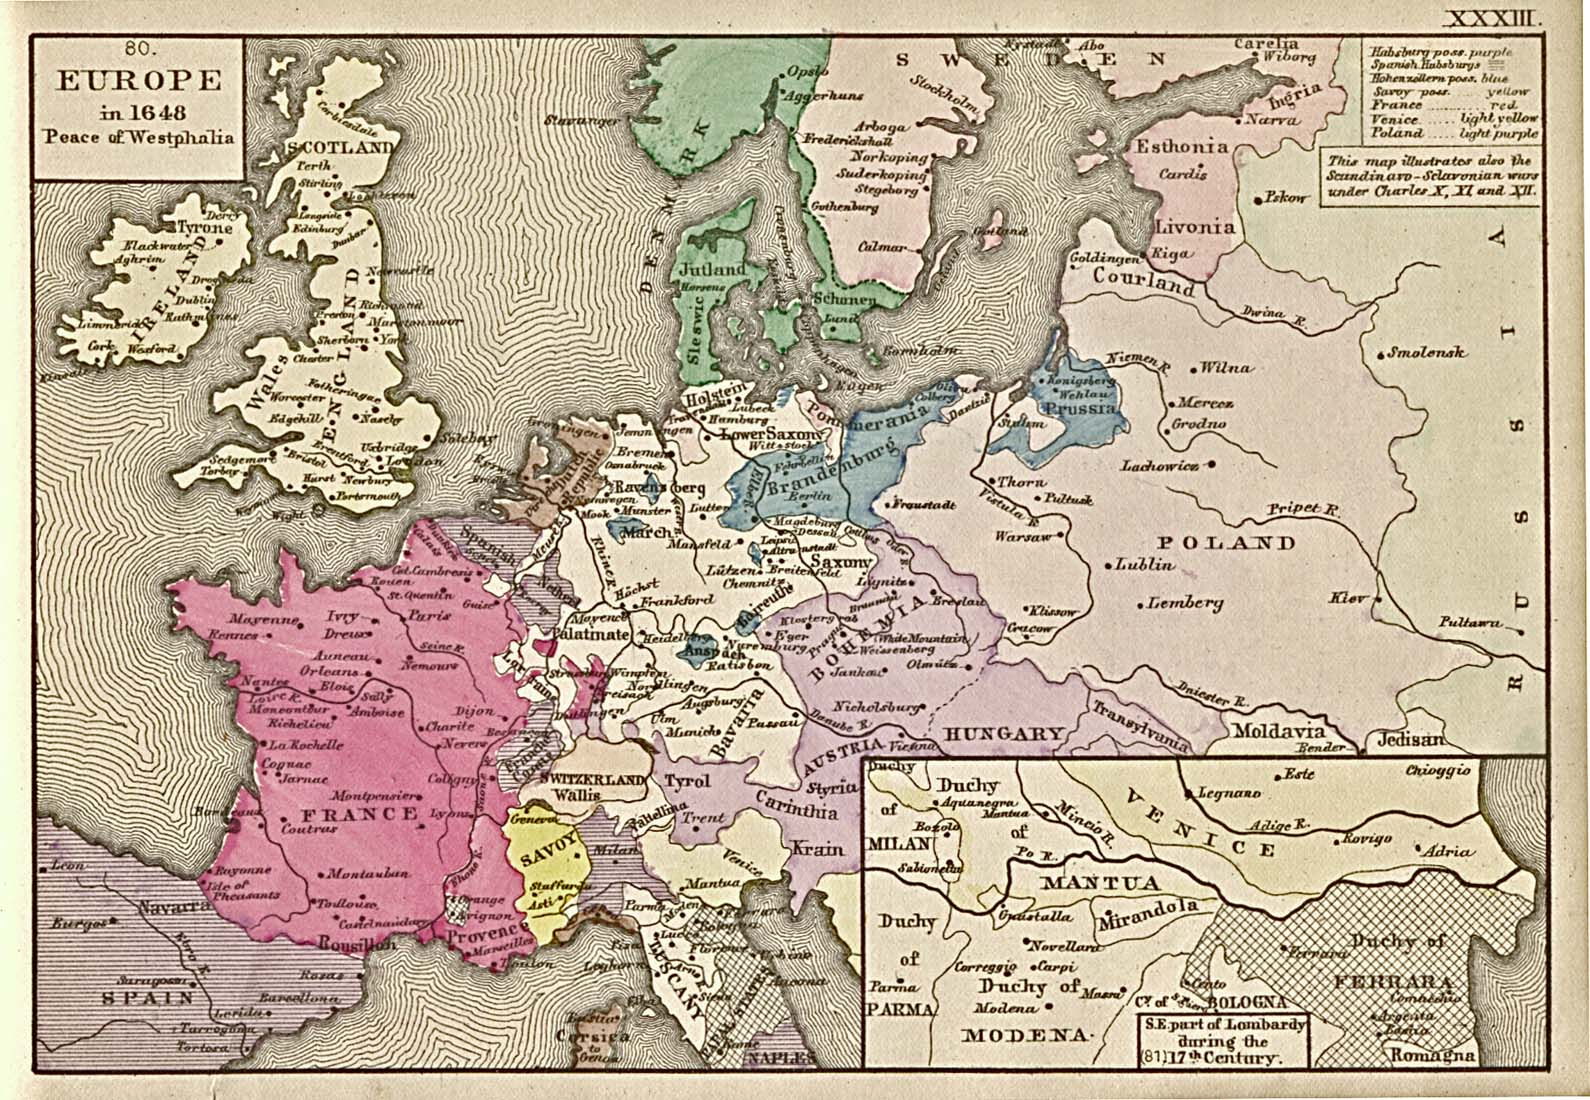 Europe after the Peace of Westphalia (1648)